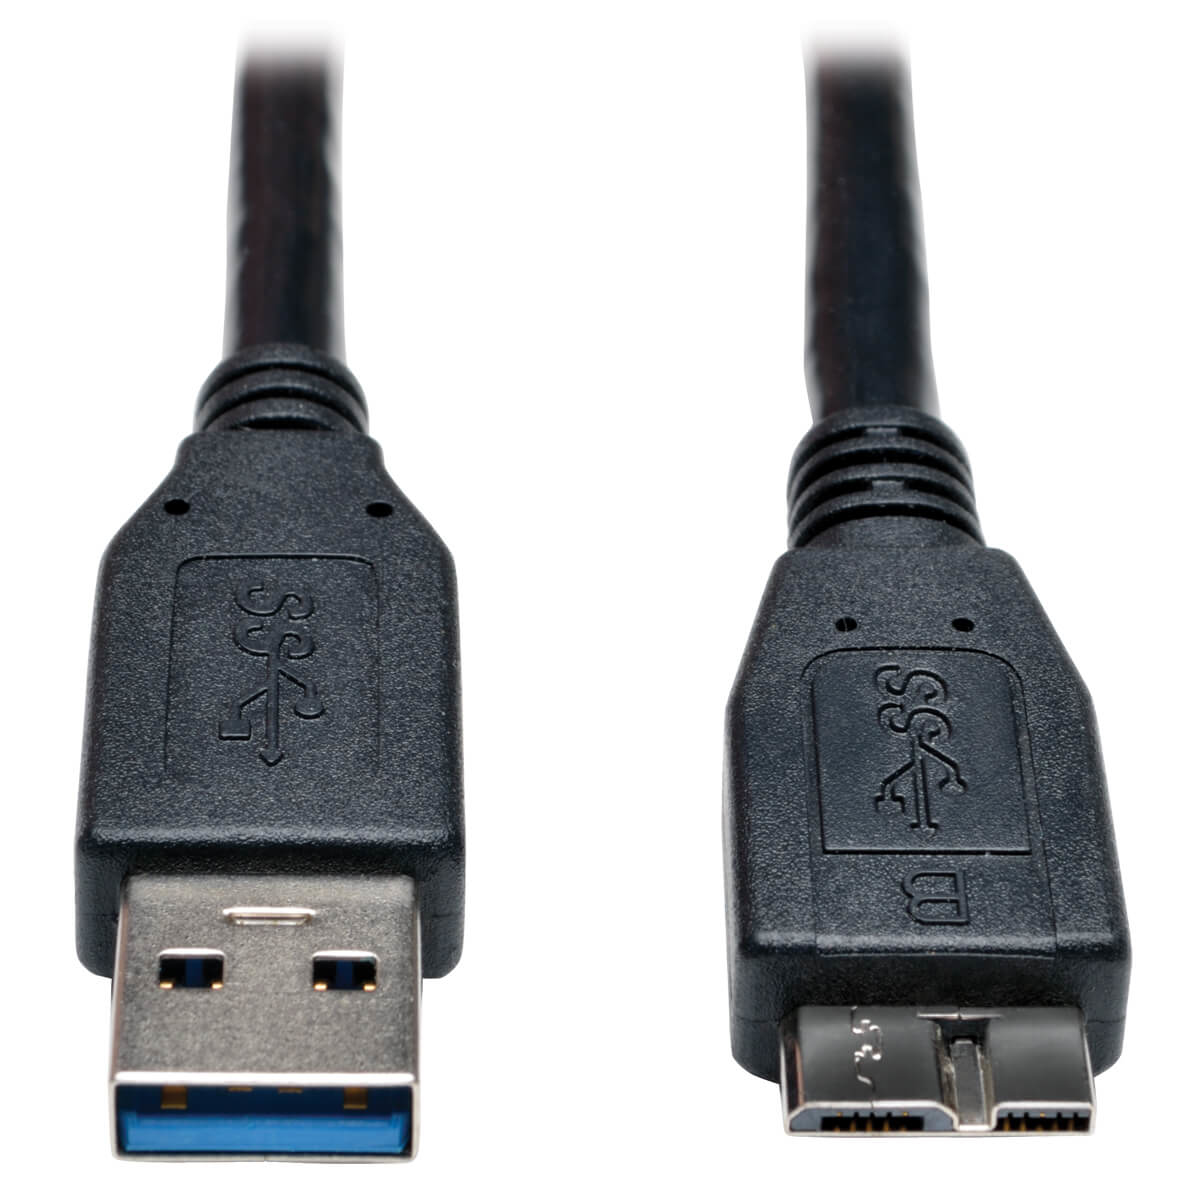 TRIPP LITE U326-006-BK USB 3.0 SUPERSPEED DEVICE CABLE (A TO MICRO-B M/M) BLACK, 1.83 M